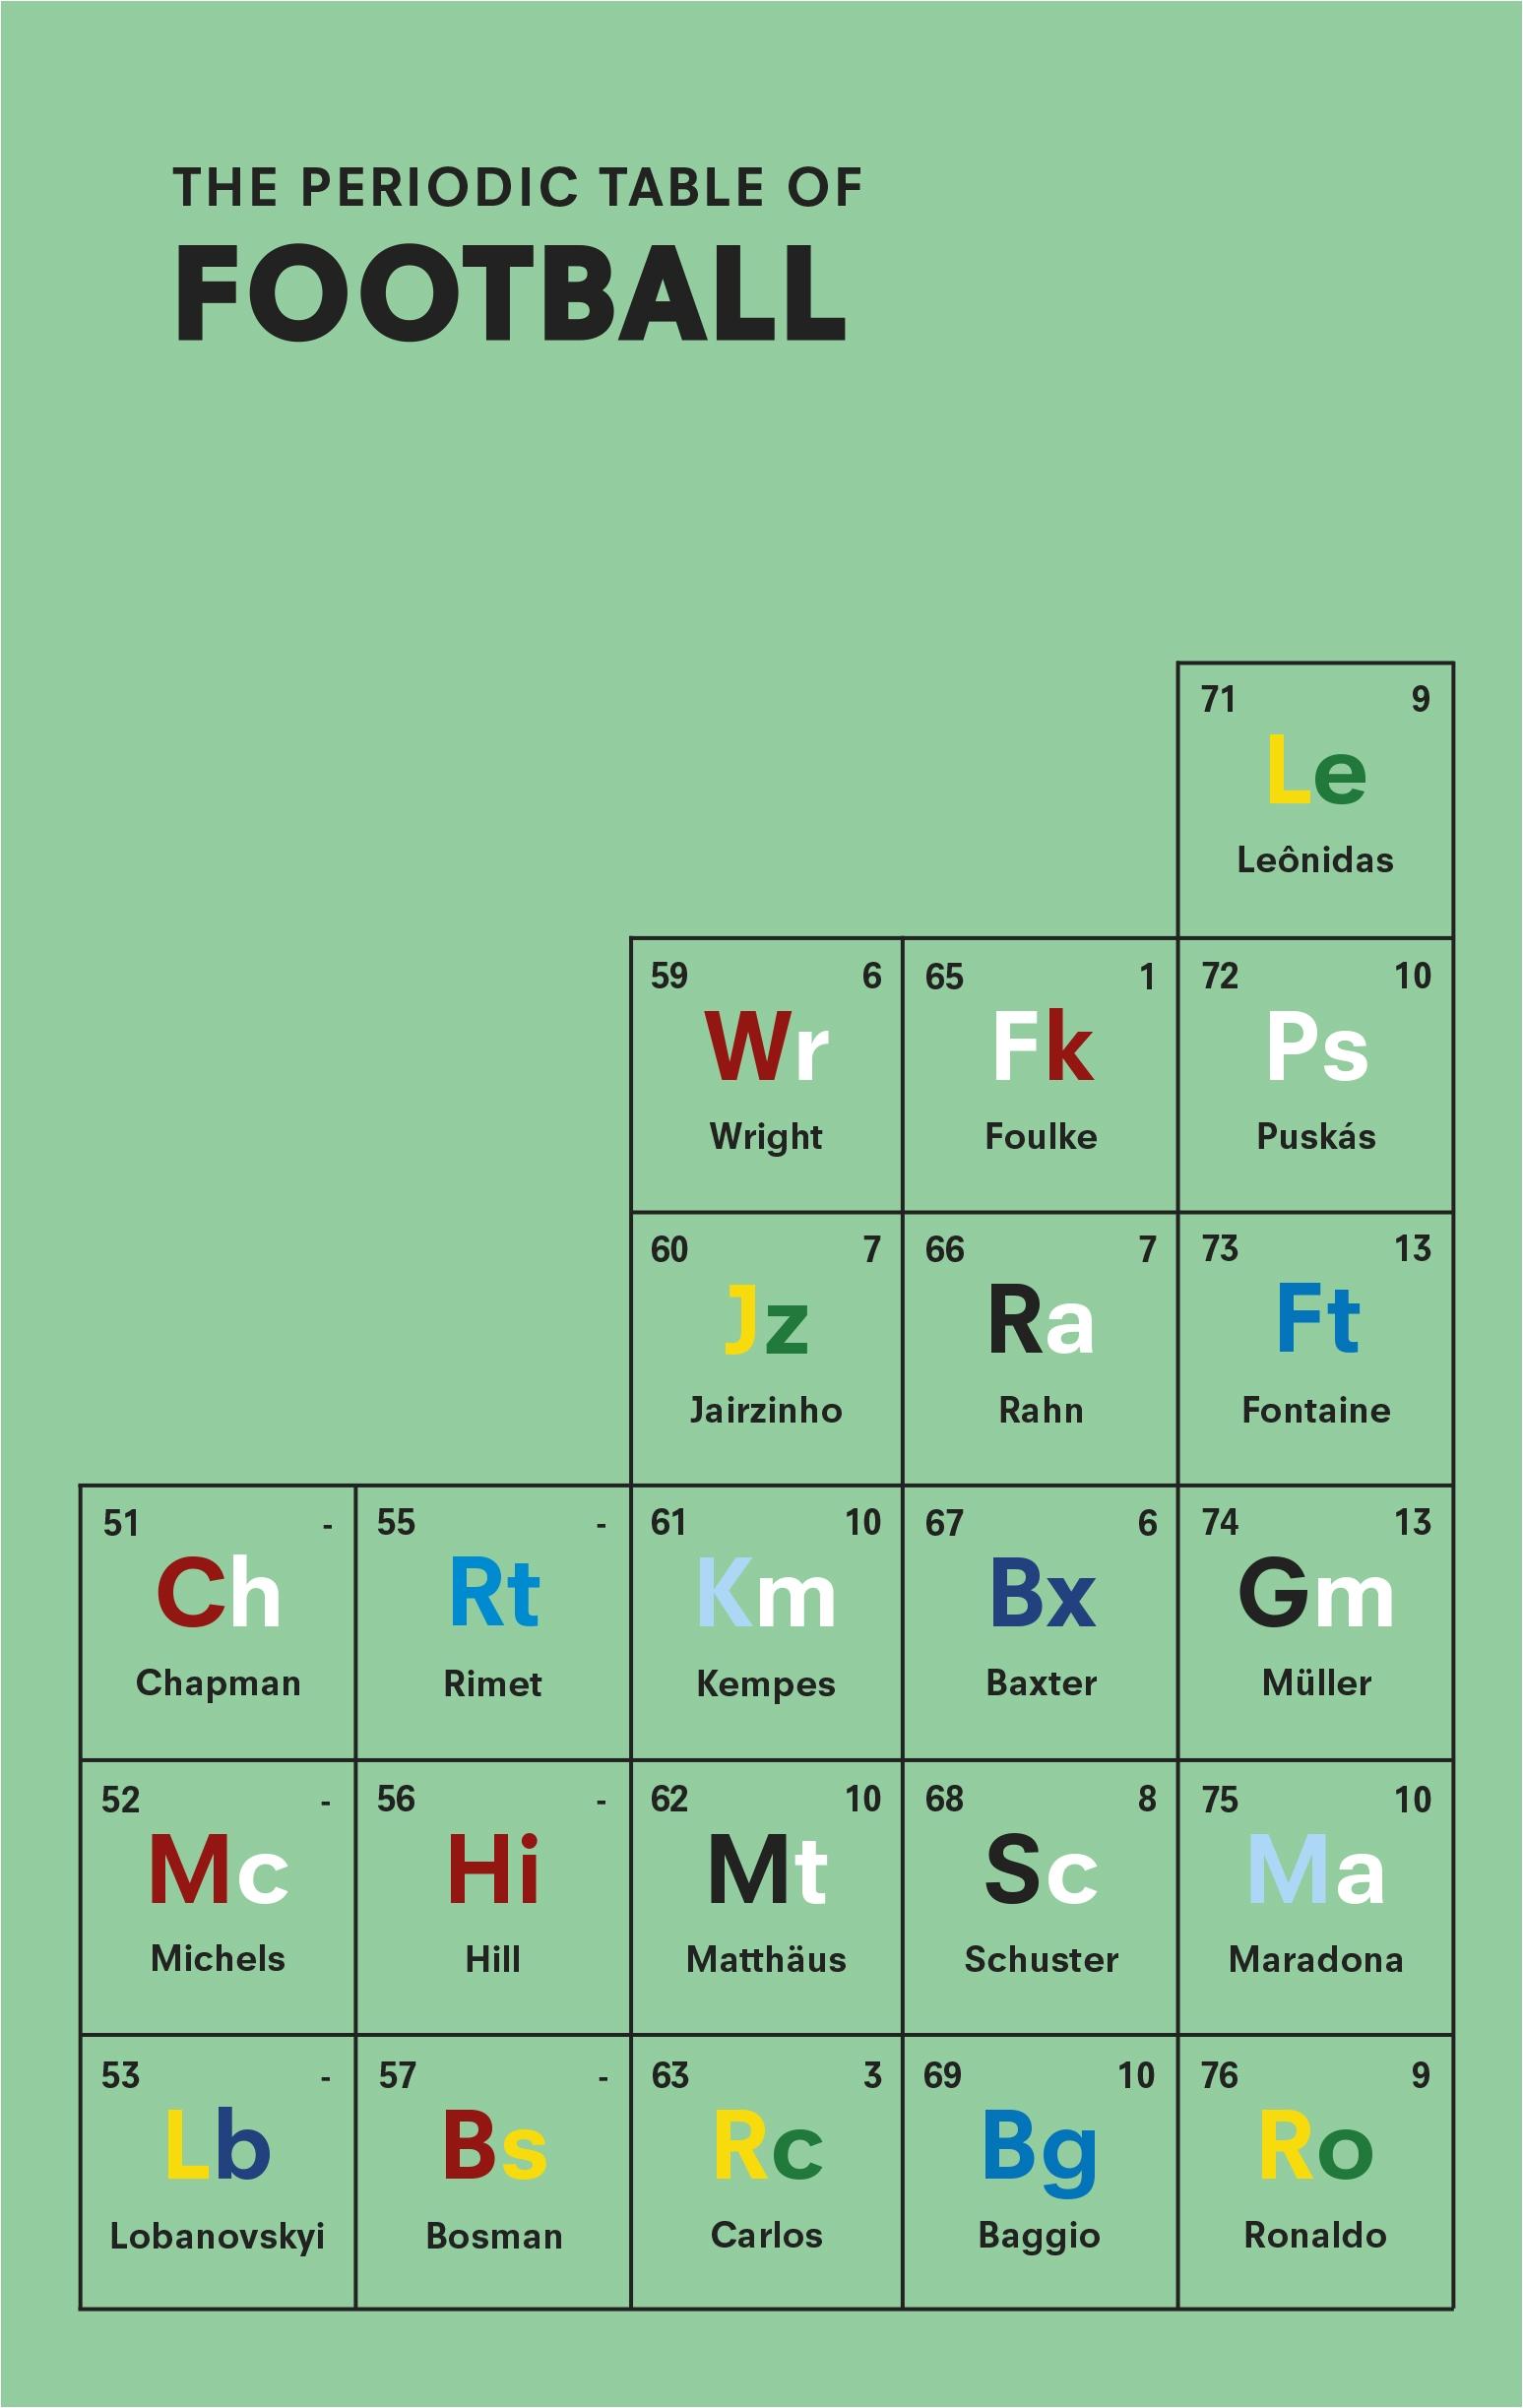 The Periodic Table Of Football By Nick Holt Penguin Books New Zealand